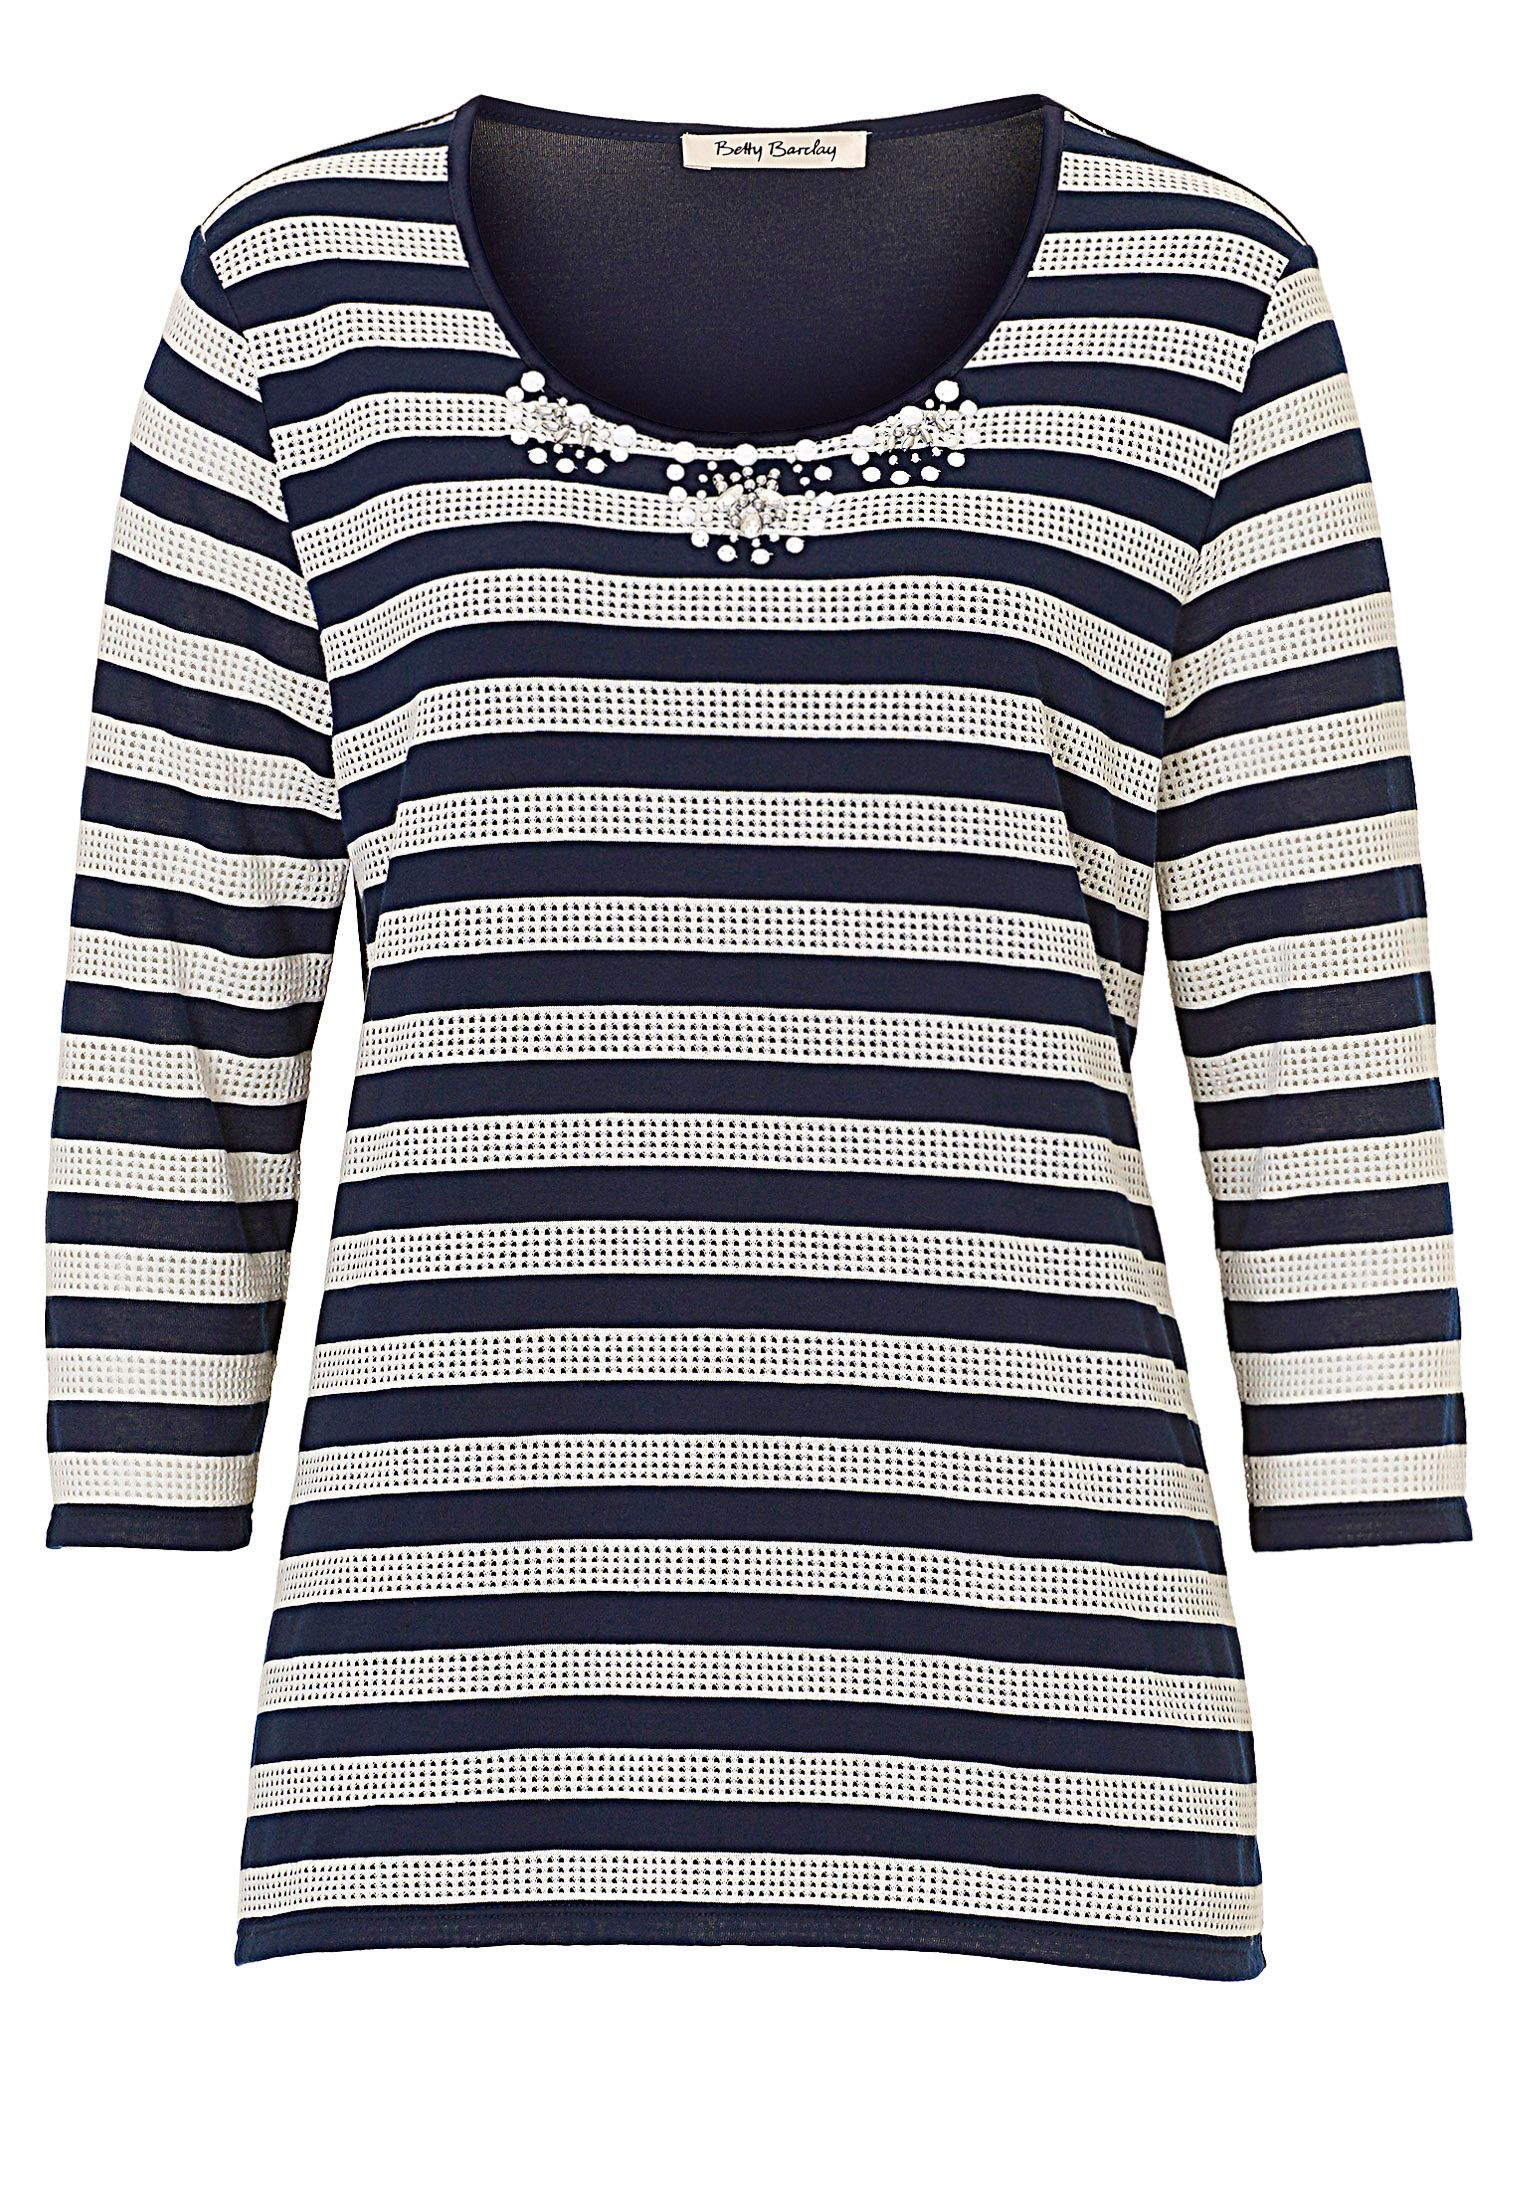 Betty Barclay Embellished striped top, Cream